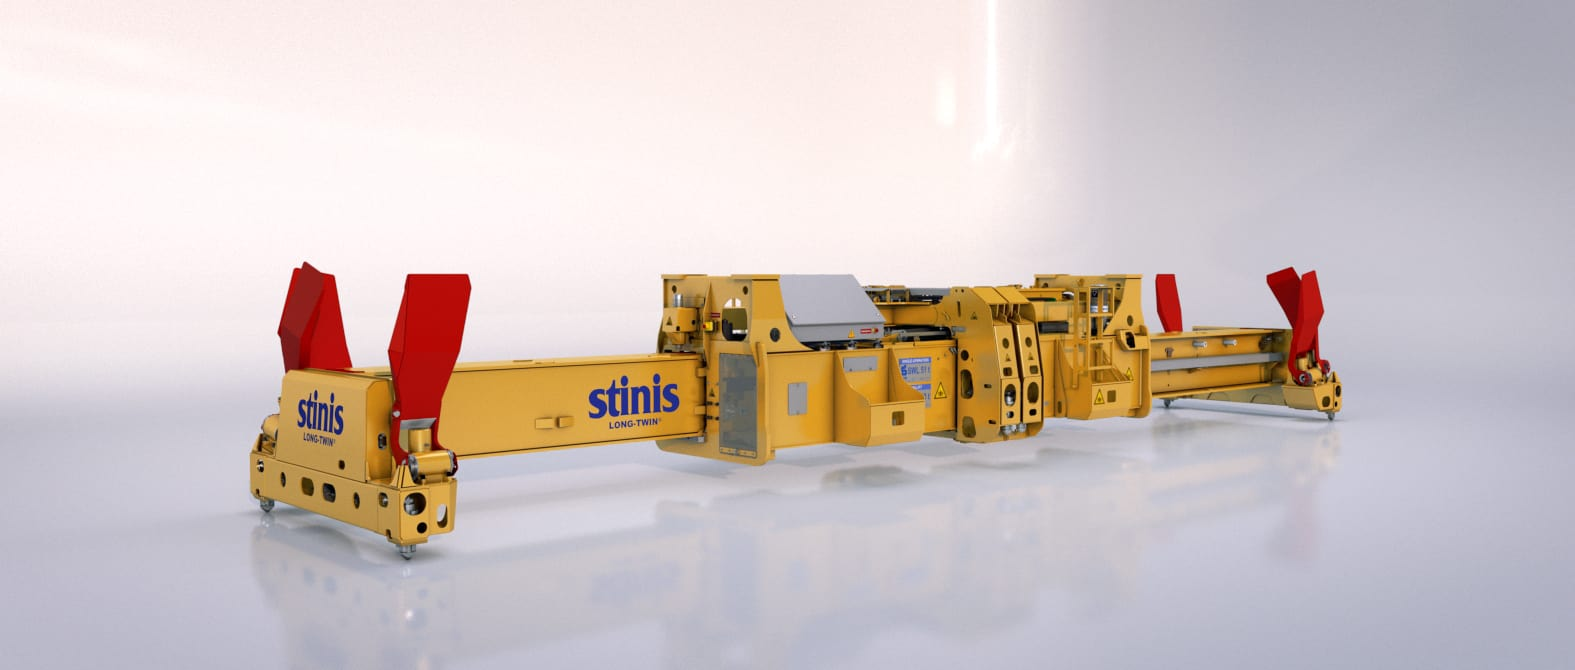 Long Twin Ship to Shore Crane Spreaders Stinis